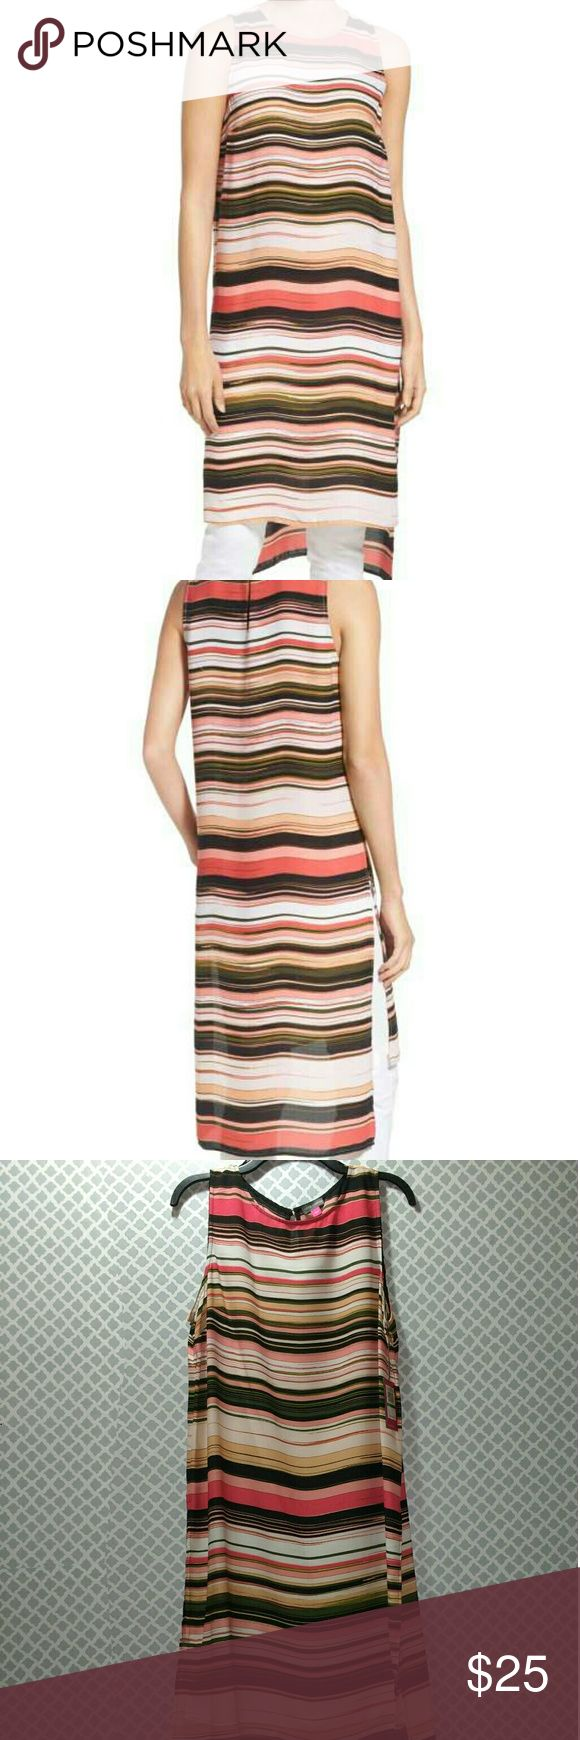 NWT Vince Camuto Long High/Low Stripe Tunic *** has small hole from security tag shown in last 2 pictures***  ** New with tags**  Beach-chic style comes to the streets via a sleeveless tunic flaunting a medley of variegated stripes in a warm- or cool-tone palette. The lightweight crepe style features an extra-long cut with a breezy high/low hem with deep side slits.  Back button-loop keyhole closure. Crewneck. Sleeveless. Side slits. Unlined. 100% polyester. Machine wash cold, tumble dry…